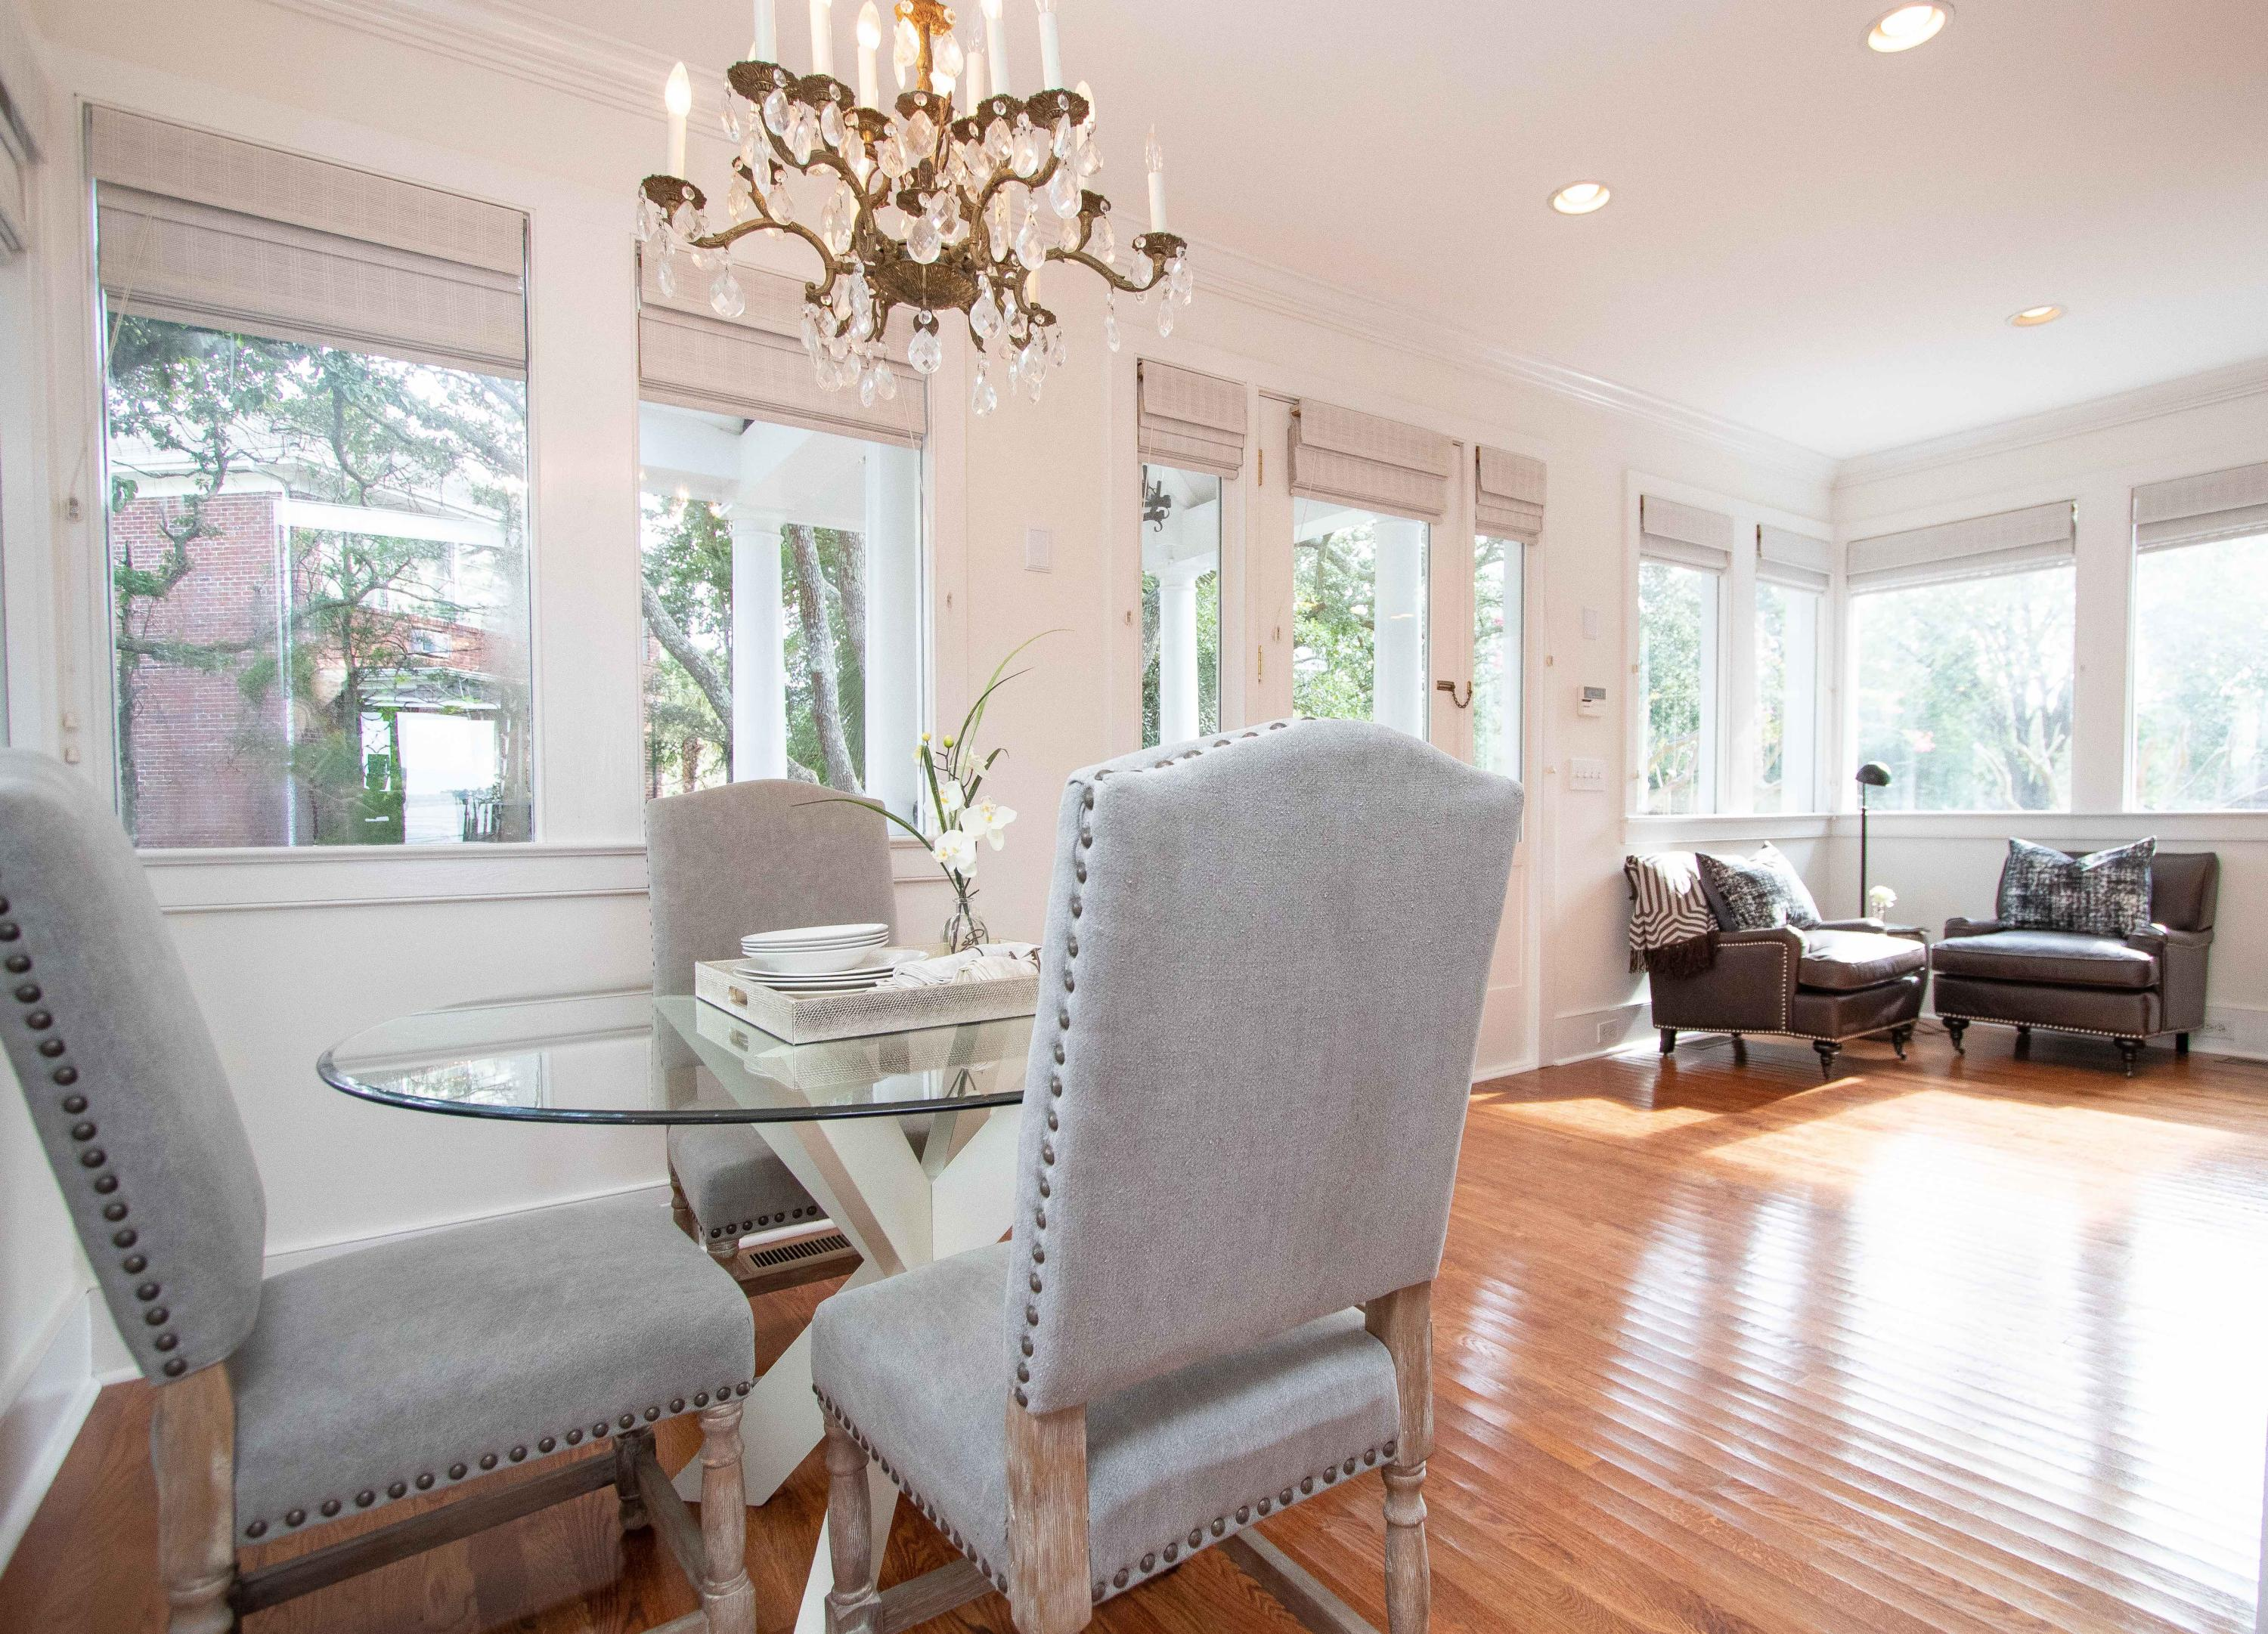 South of Broad Homes For Sale - 104 Murray, Charleston, SC - 3